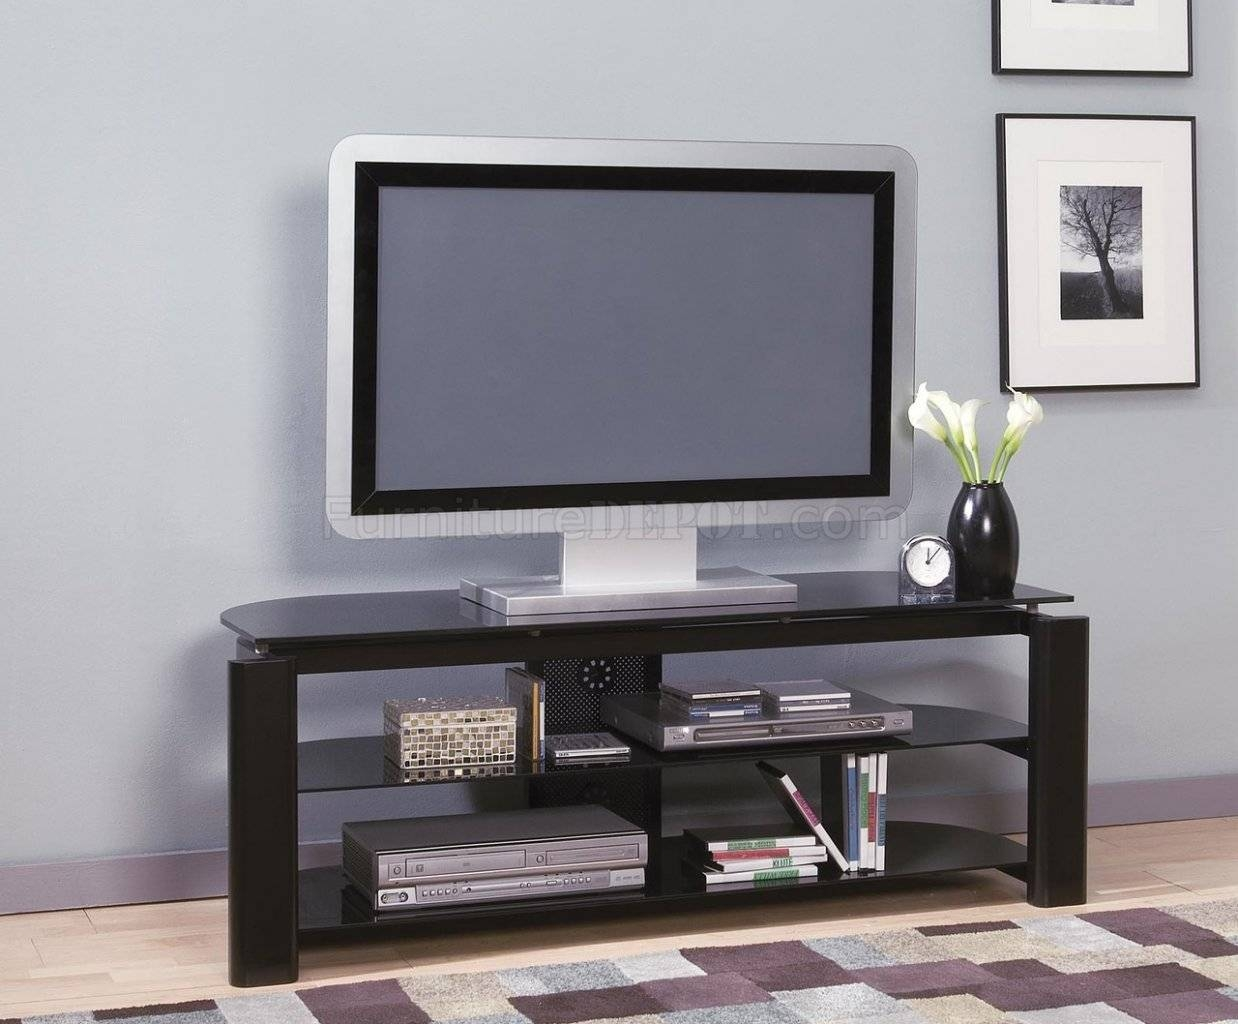 Black Glass & Metal Modern Tv Stand W/storage Shelves within Modern Glass Tv Stands (Image 2 of 15)